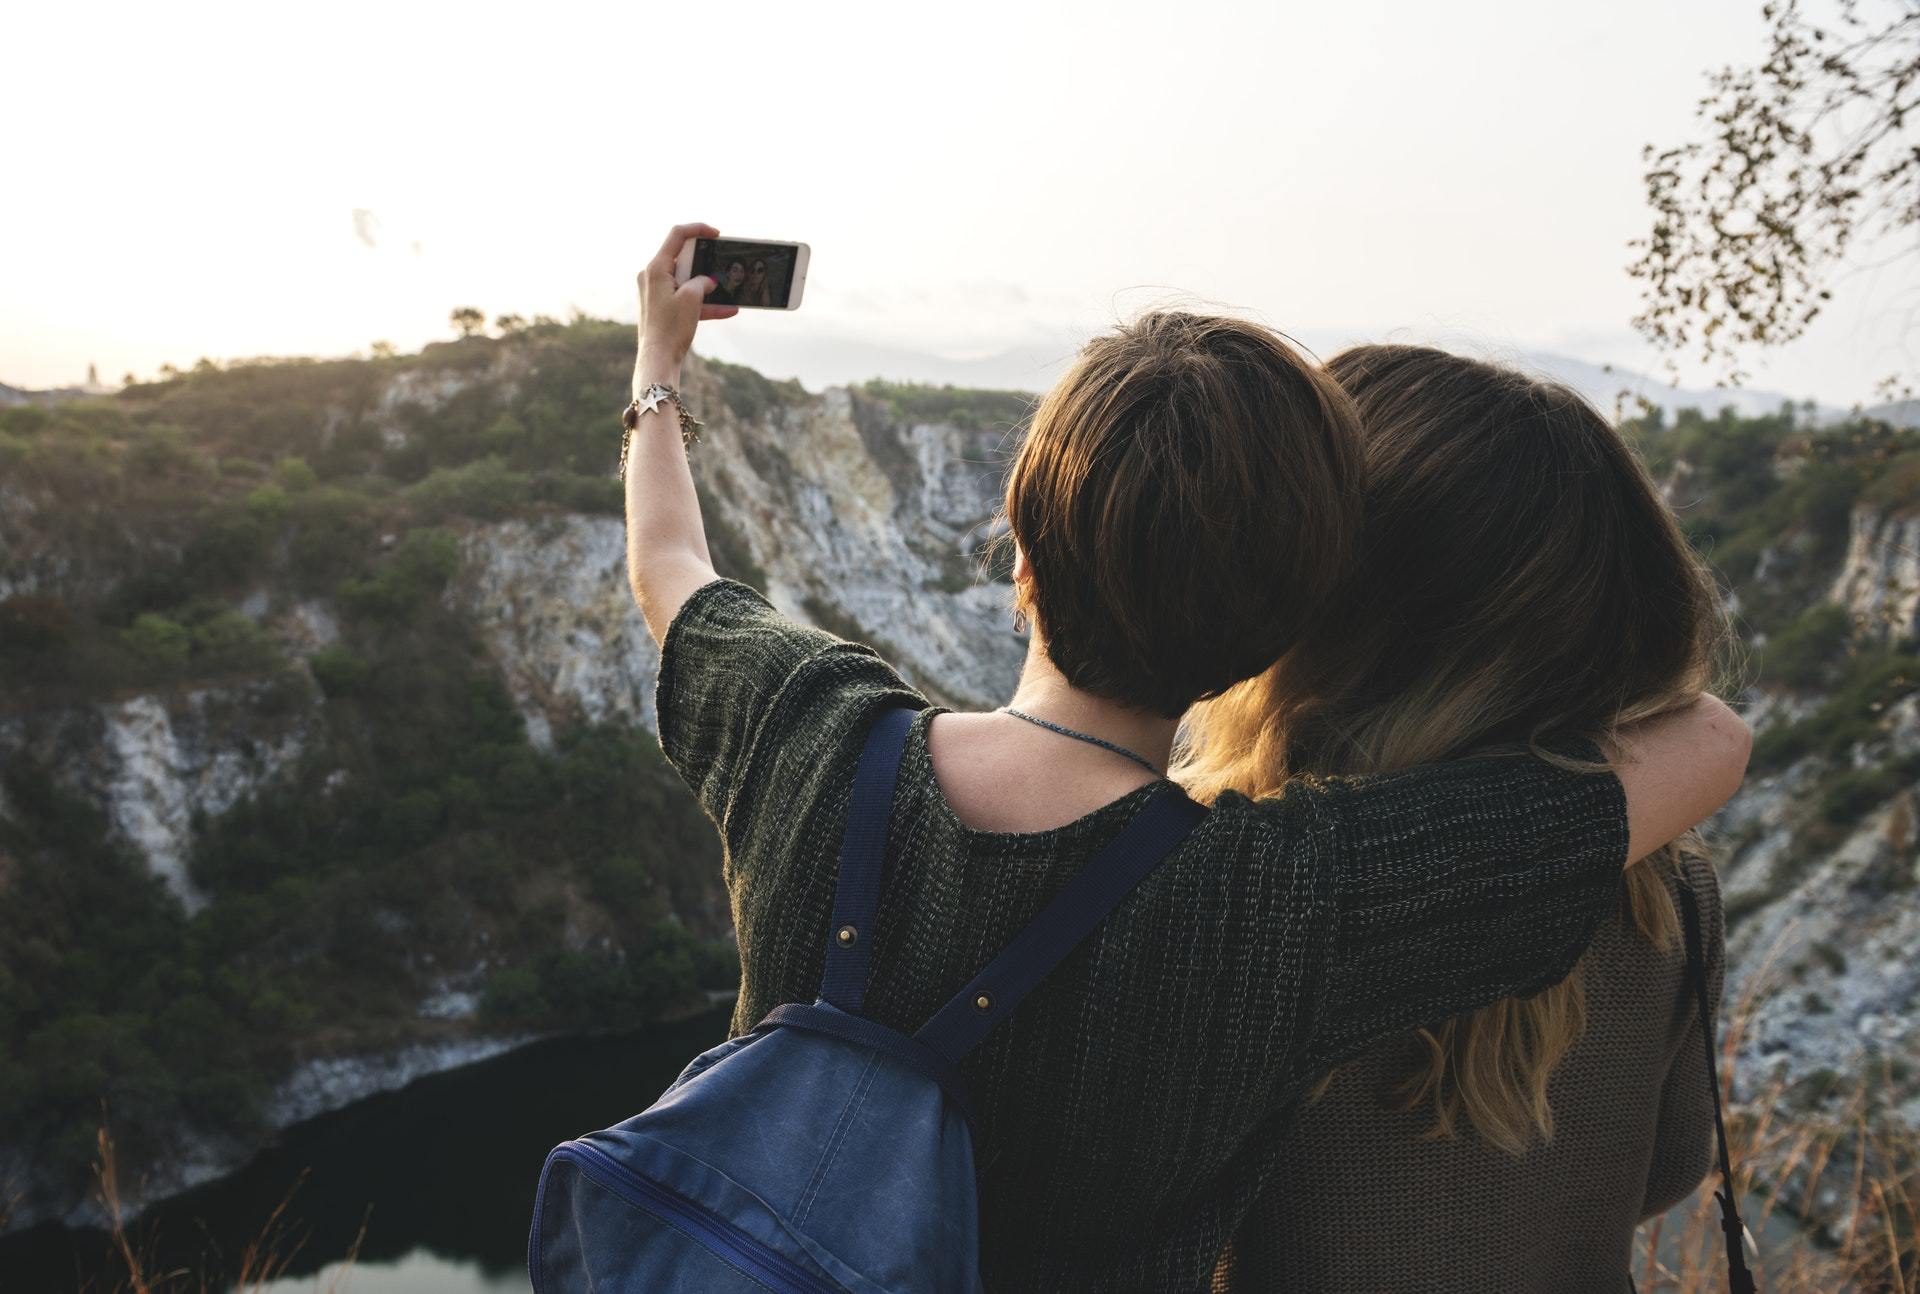 Death by Selfie: The Curious Case of Fatal Travel Photos